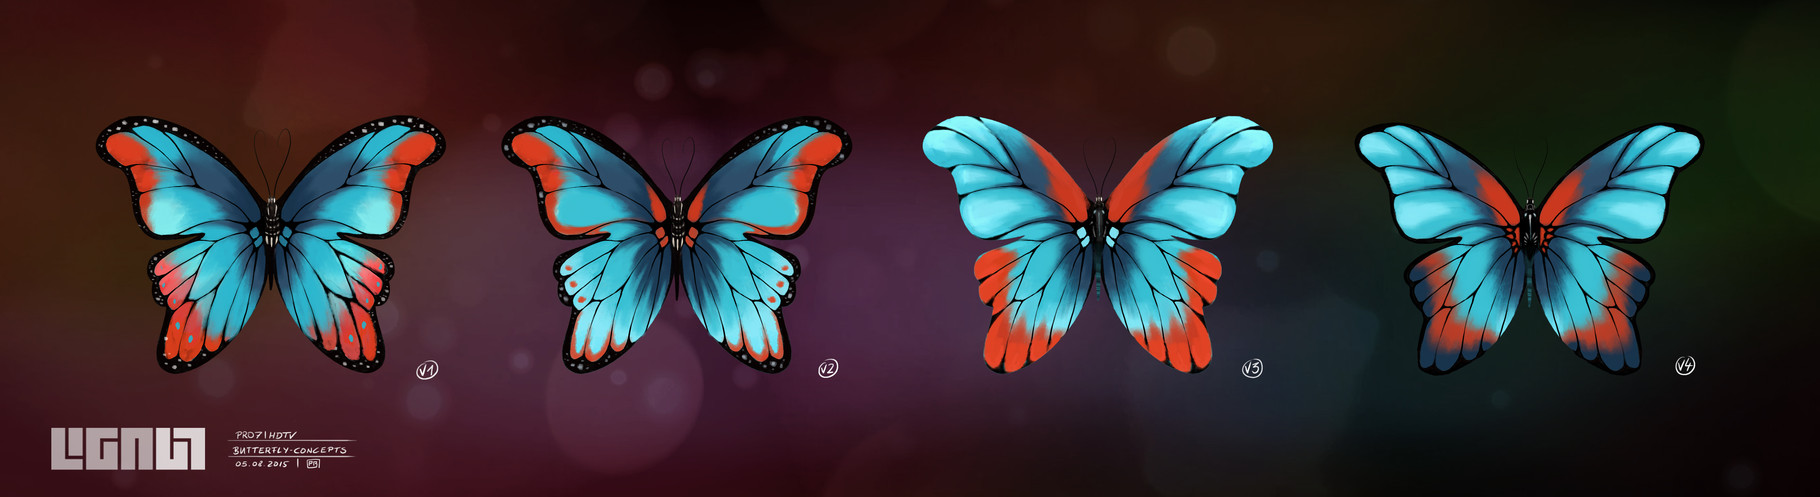 Pro7 HDTV - Butterfly - concept - Peter Bartels